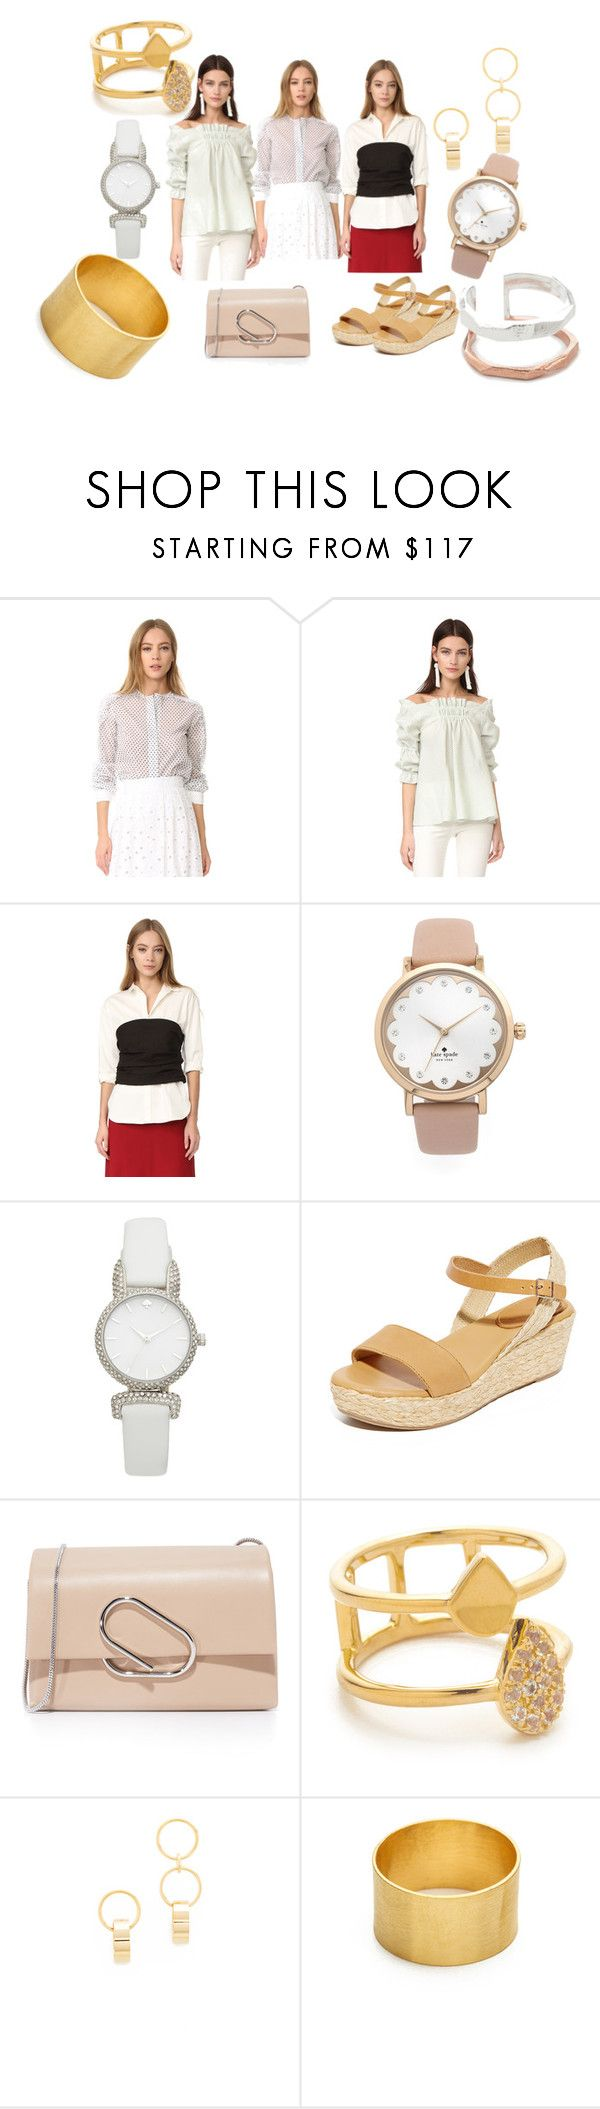 """new trends"" by monica022 ❤ liked on Polyvore featuring Amelia Toro, Hellessy, Kate Spade, Matt Bernson, 3.1 Phillip Lim, Elizabeth and James, Amber Sceats, Maya Magal and vintage"